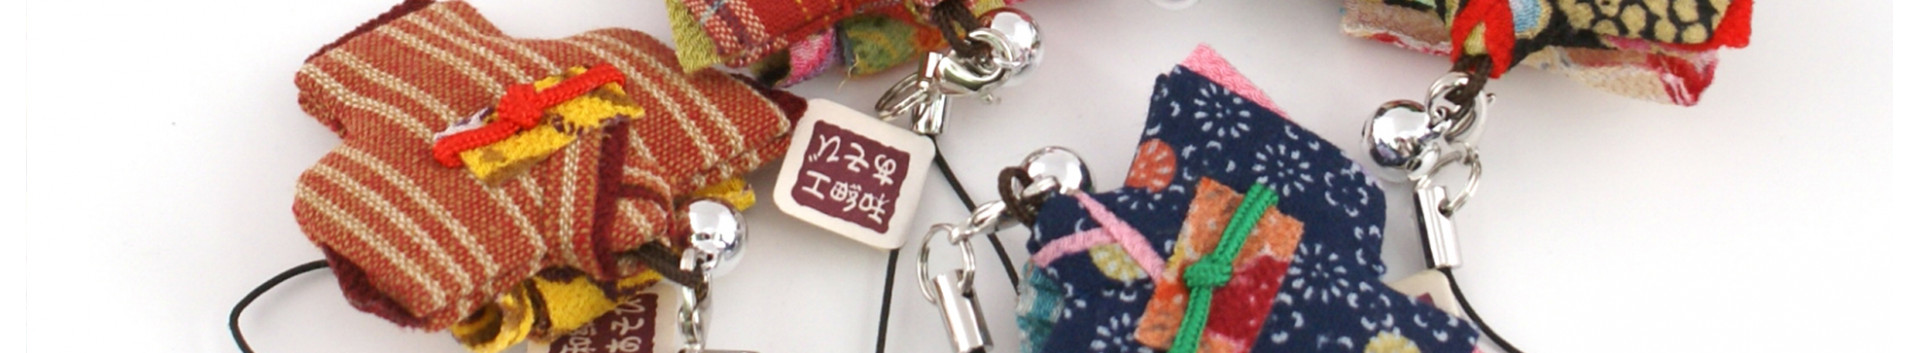 Phone charms from Japan